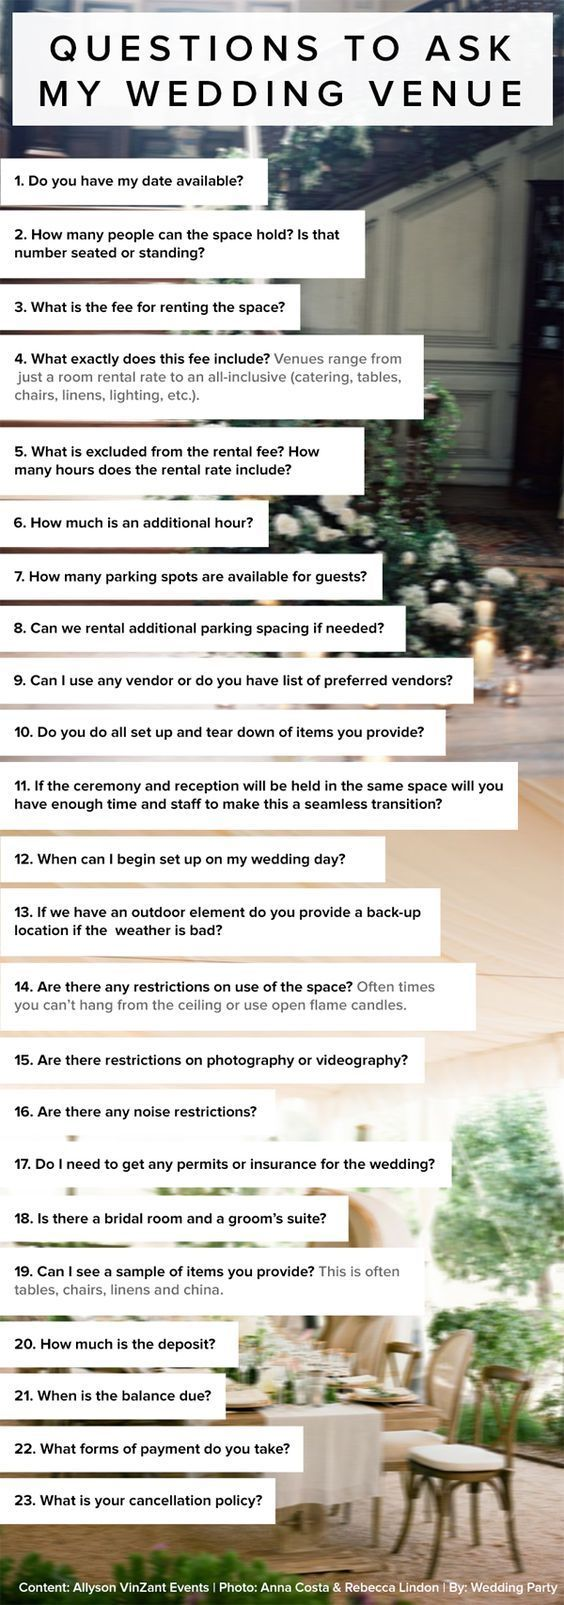 best ideas about wedding venue questions wedding 23 questions to ask my wedding venue by allyson vinzant events